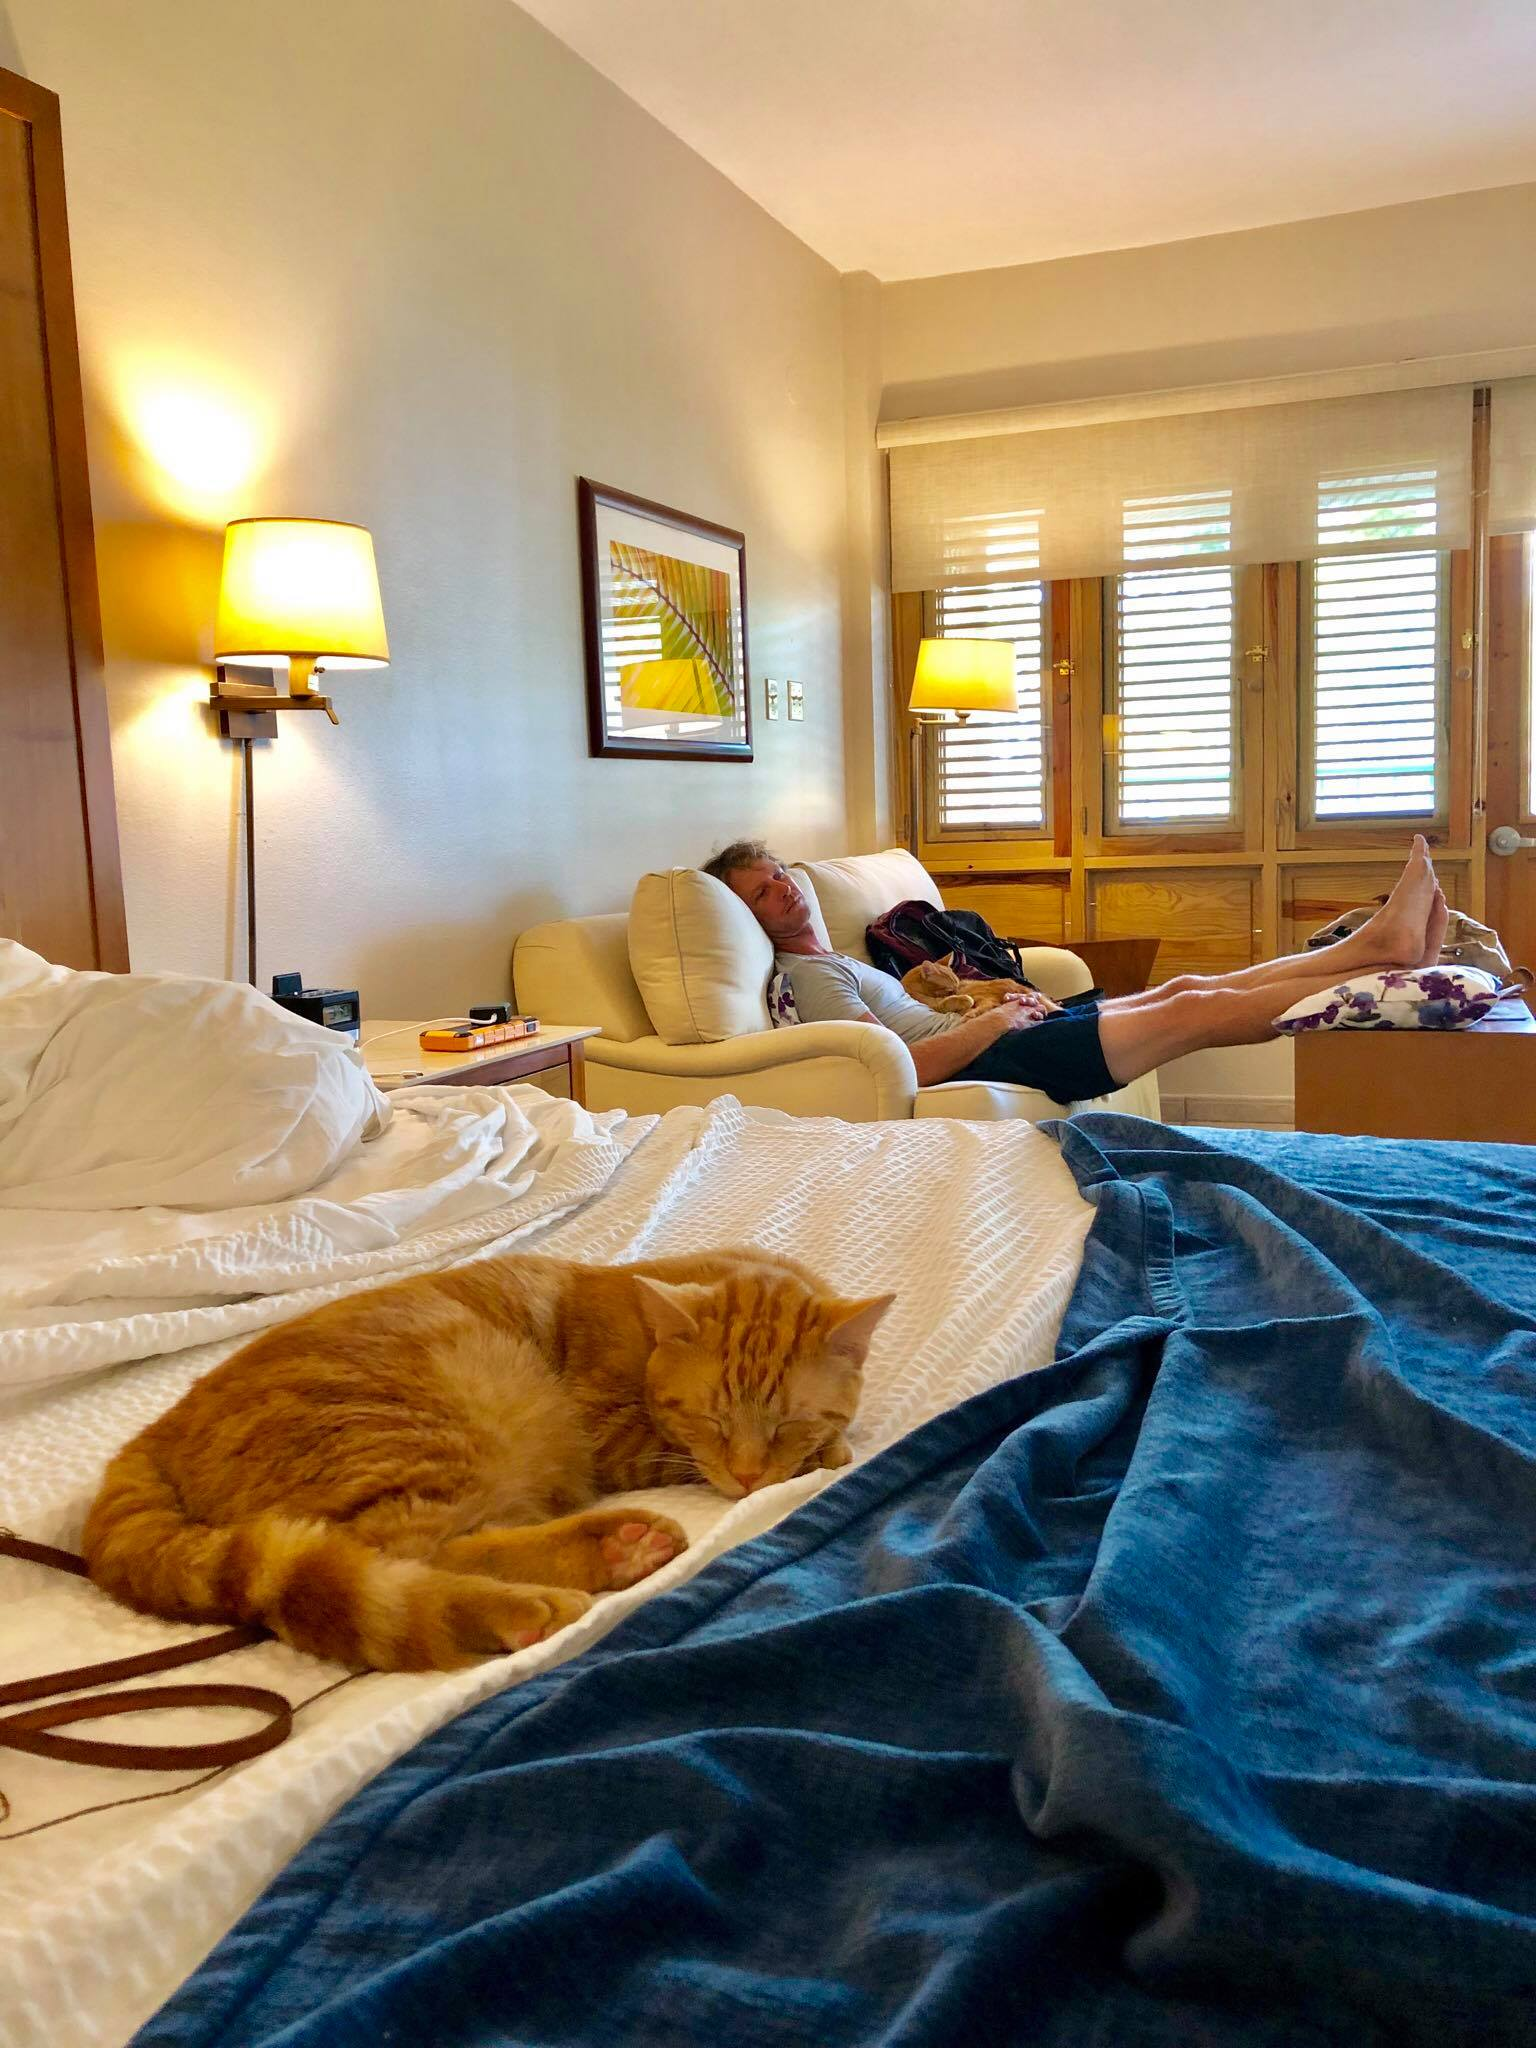 Sailing Life Day 322 Hotel Life of The Sailors Cats - Captain Ahab & Little Zissou's Luxury Staycation1.jpg